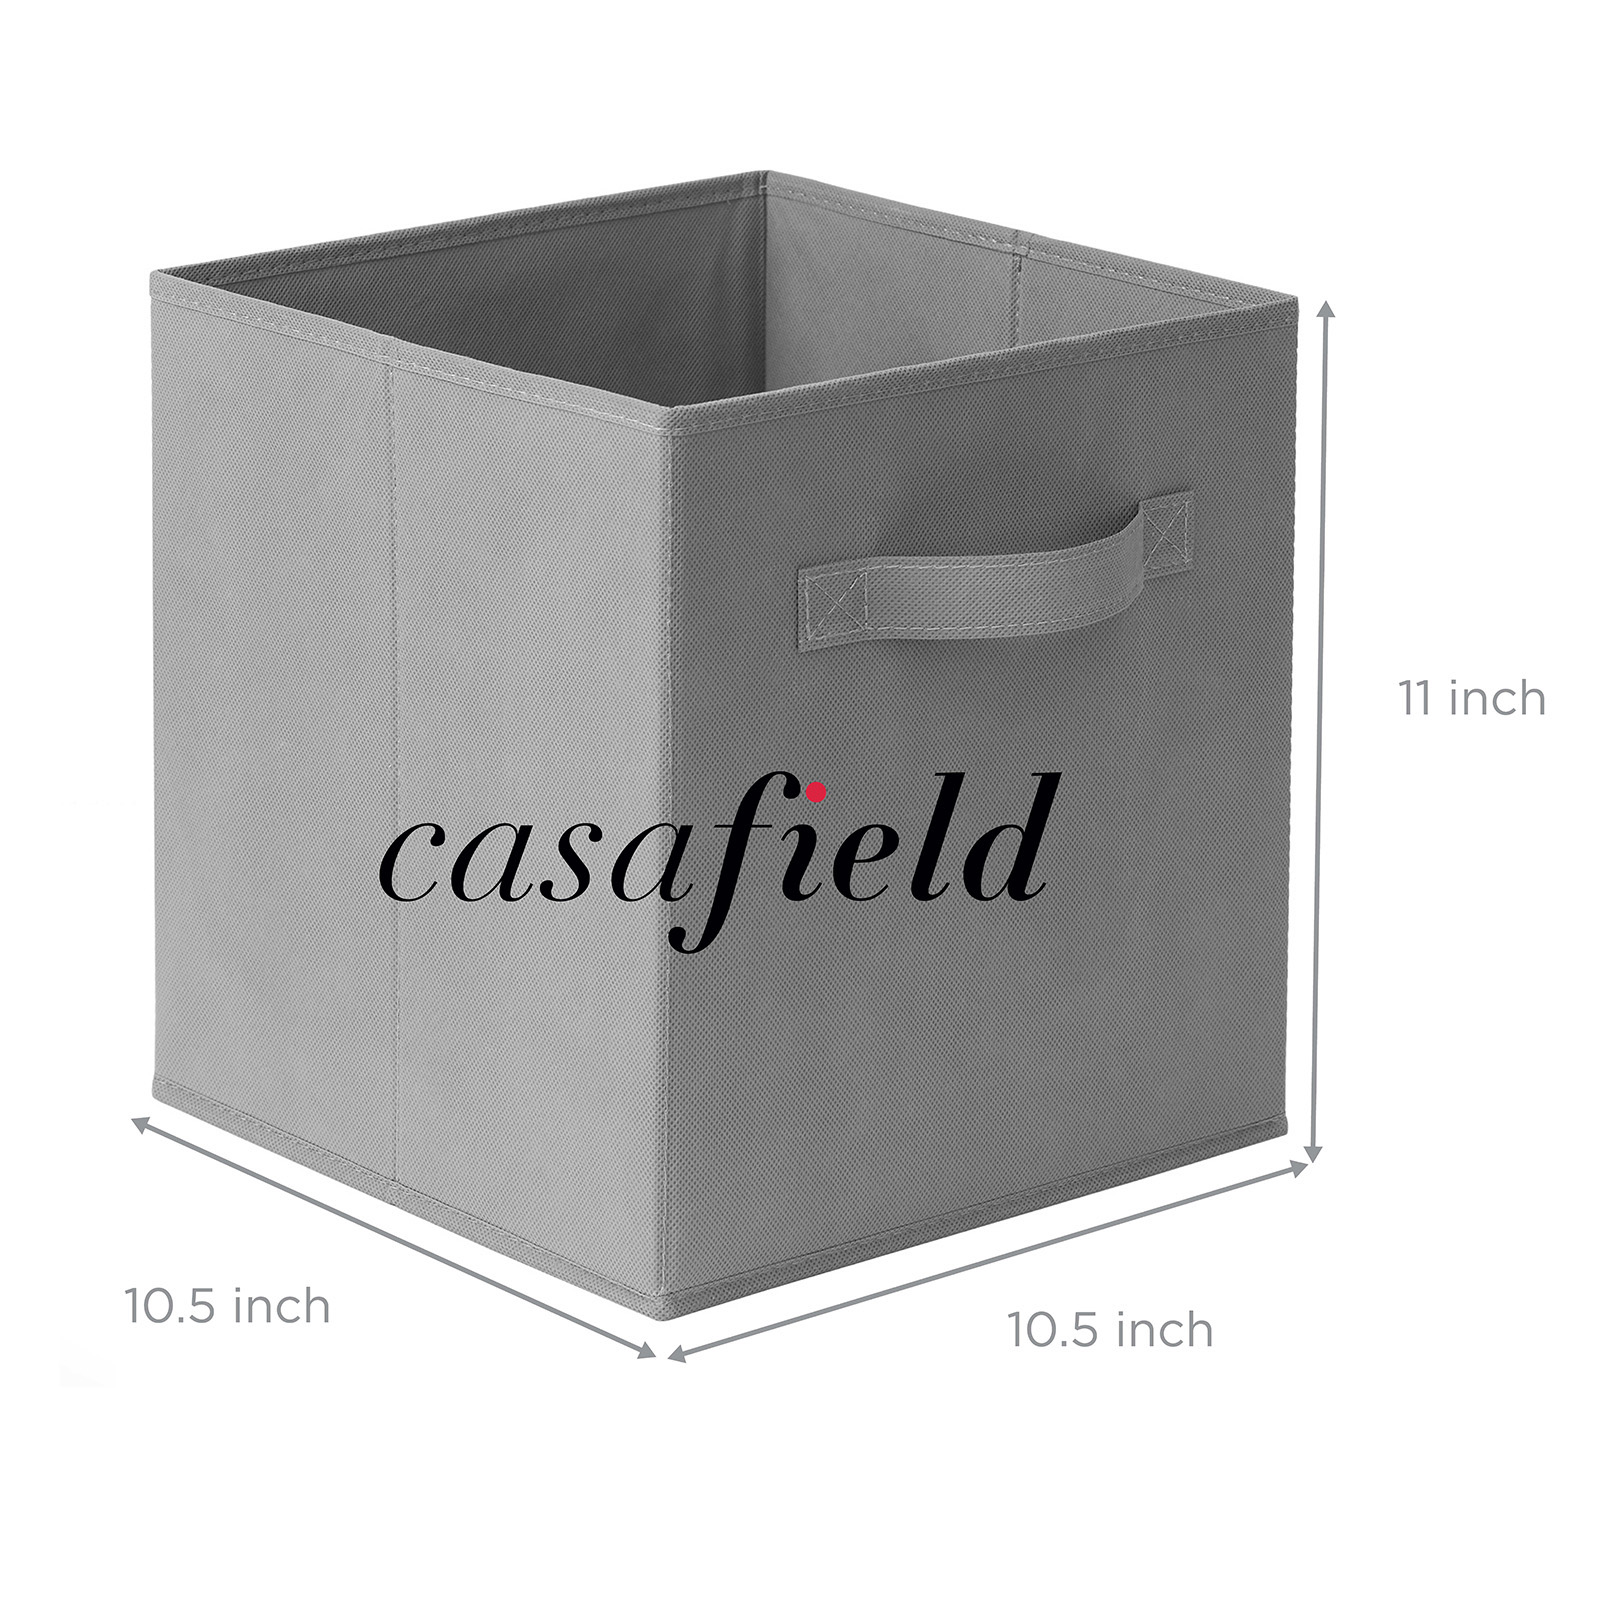 6-Collapsible-Foldable-Cloth-Fabric-Cubby-Cube-Storage-Bins-Baskets-for-Shelves thumbnail 24